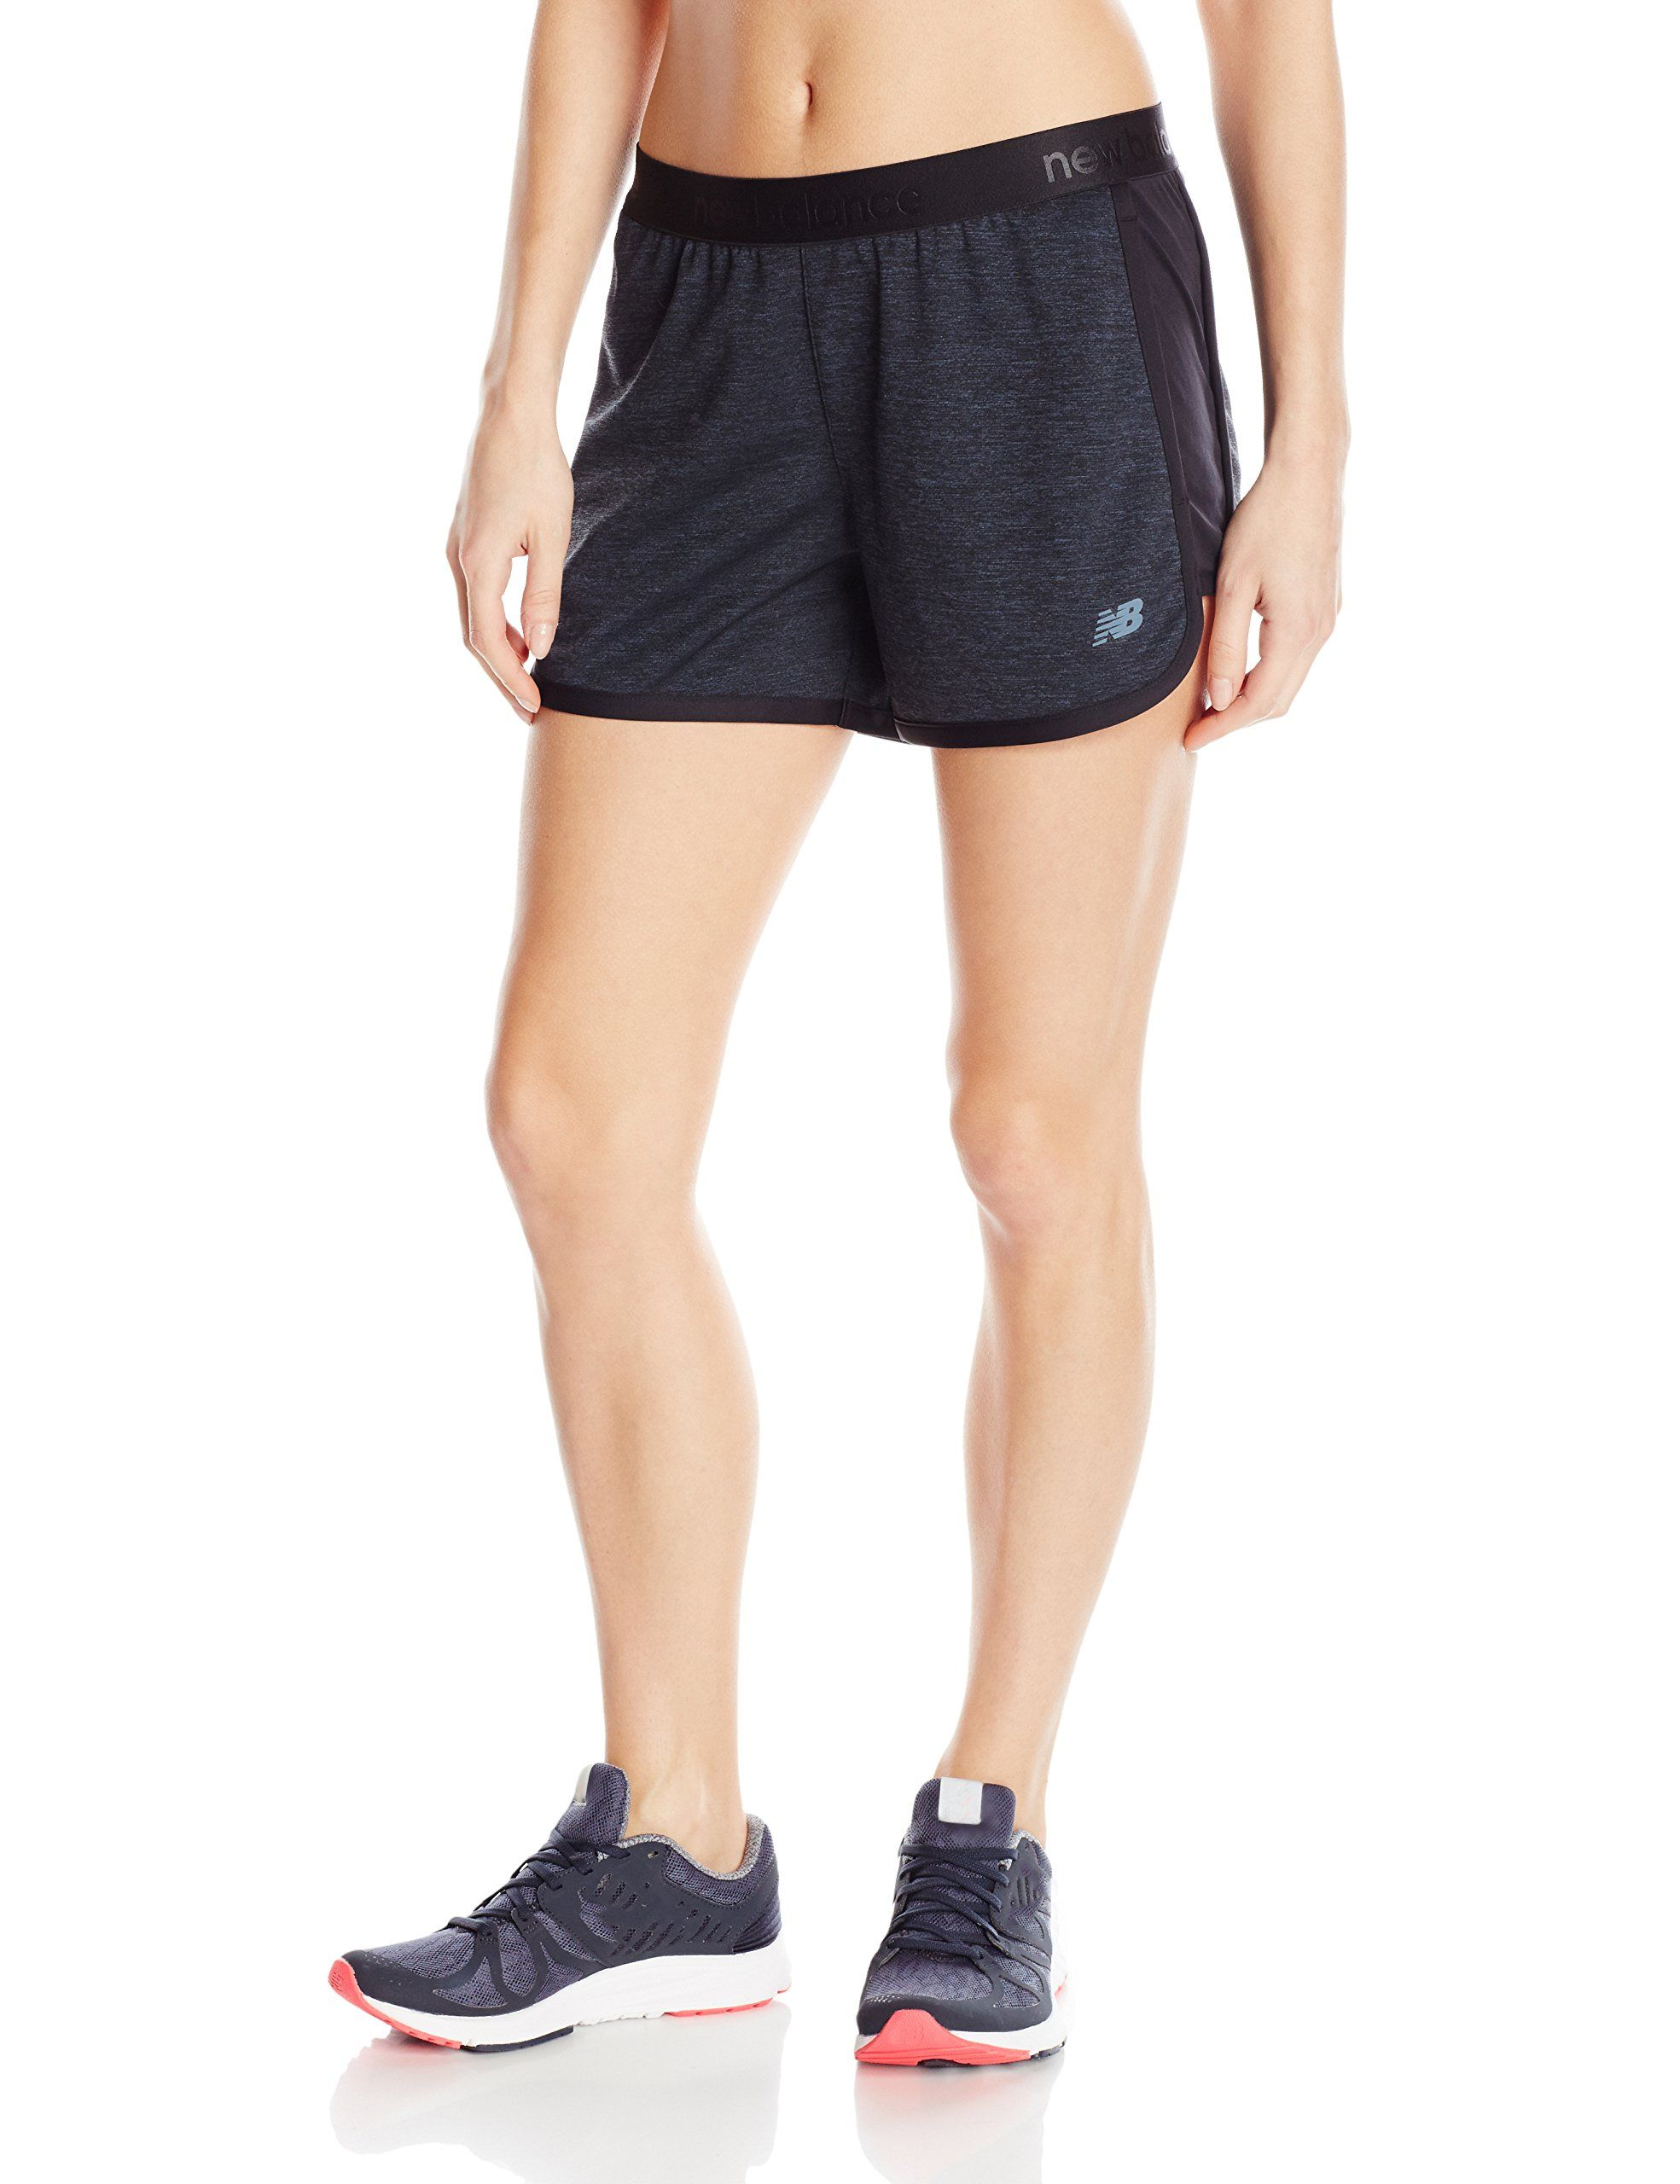 3463ef69cfd93 New Balance Women's Performance Shorts, Black/Grey, Large. Two side texture  Pique. Contrast self binding and insets. Hand pockets. Reflective nb logo.